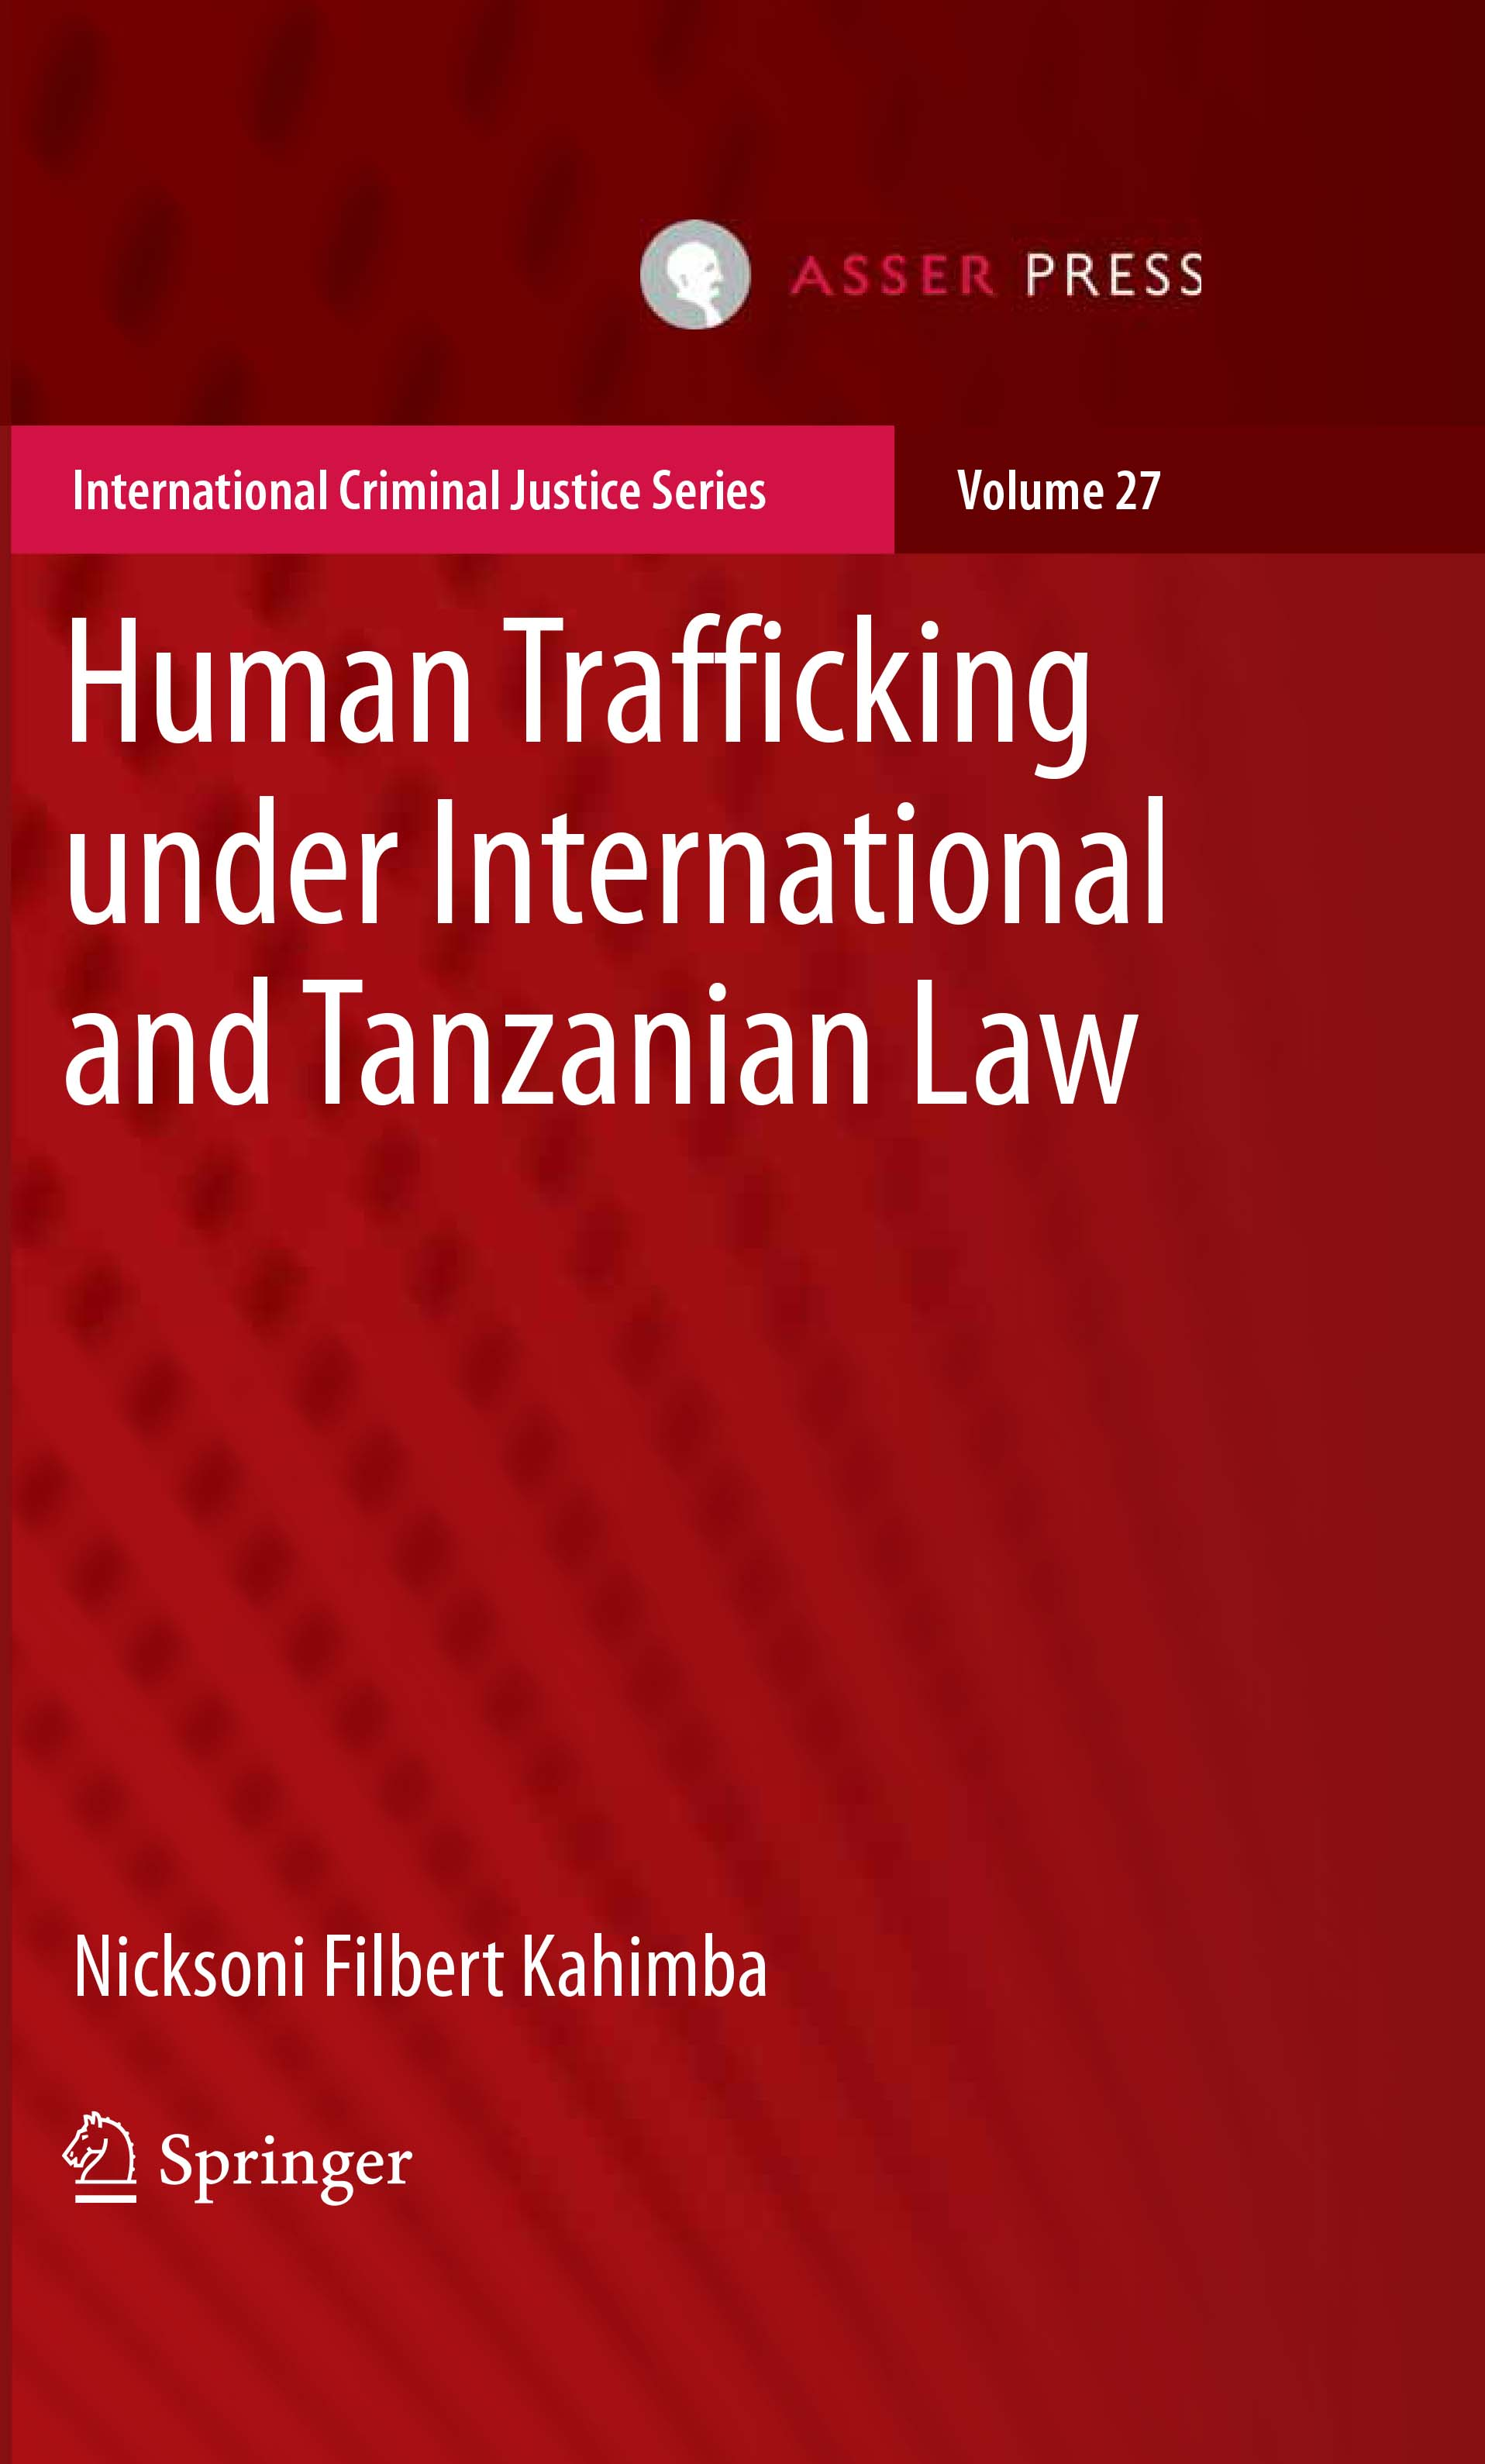 Human Trafficking under International and Tanzanian Law